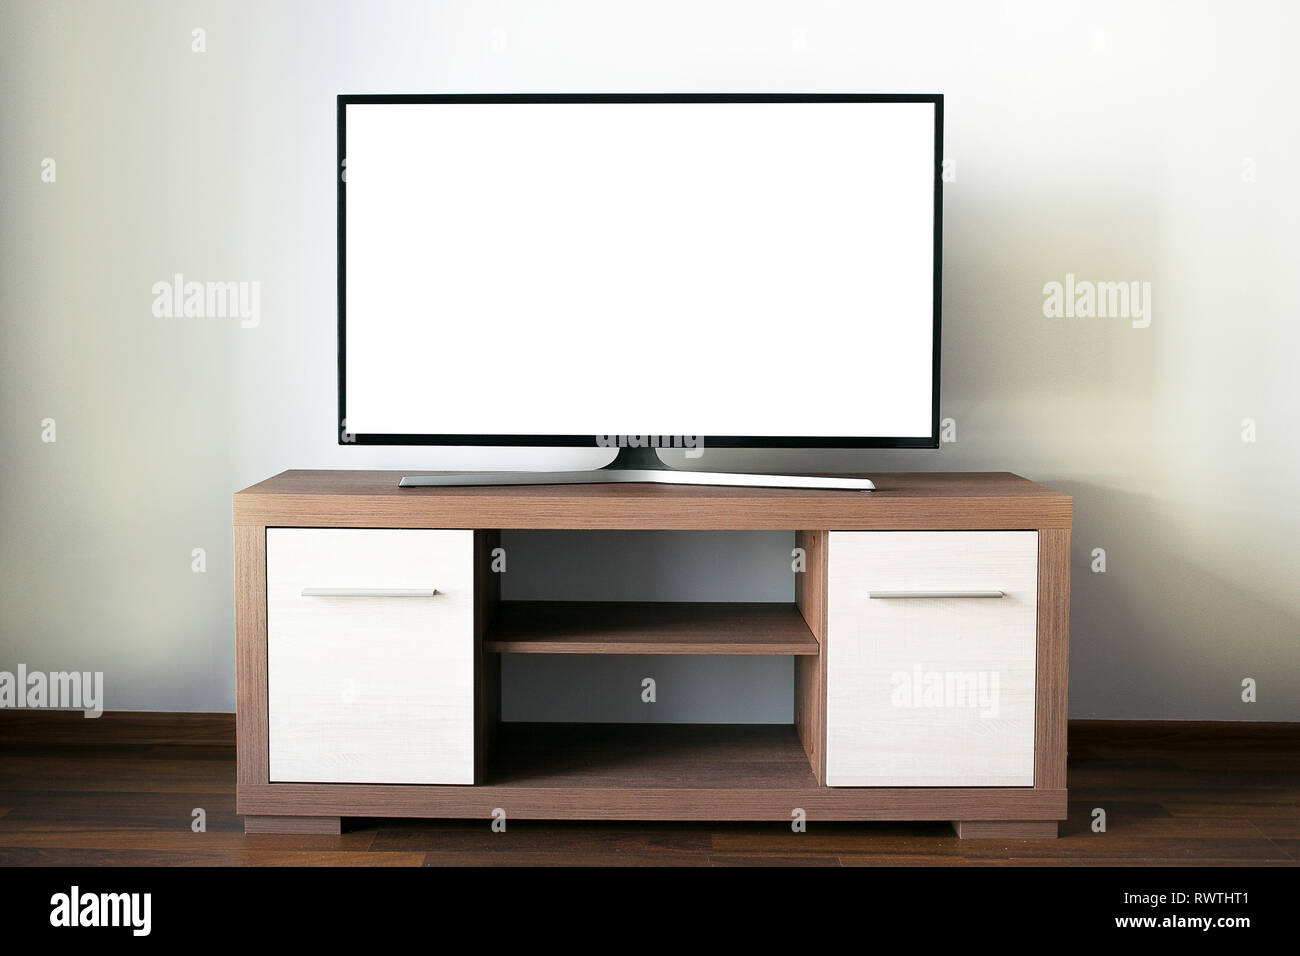 Big Flat Lcd Television With A Blank Screen On A Wooden Tv Stand Stock Photo Alamy